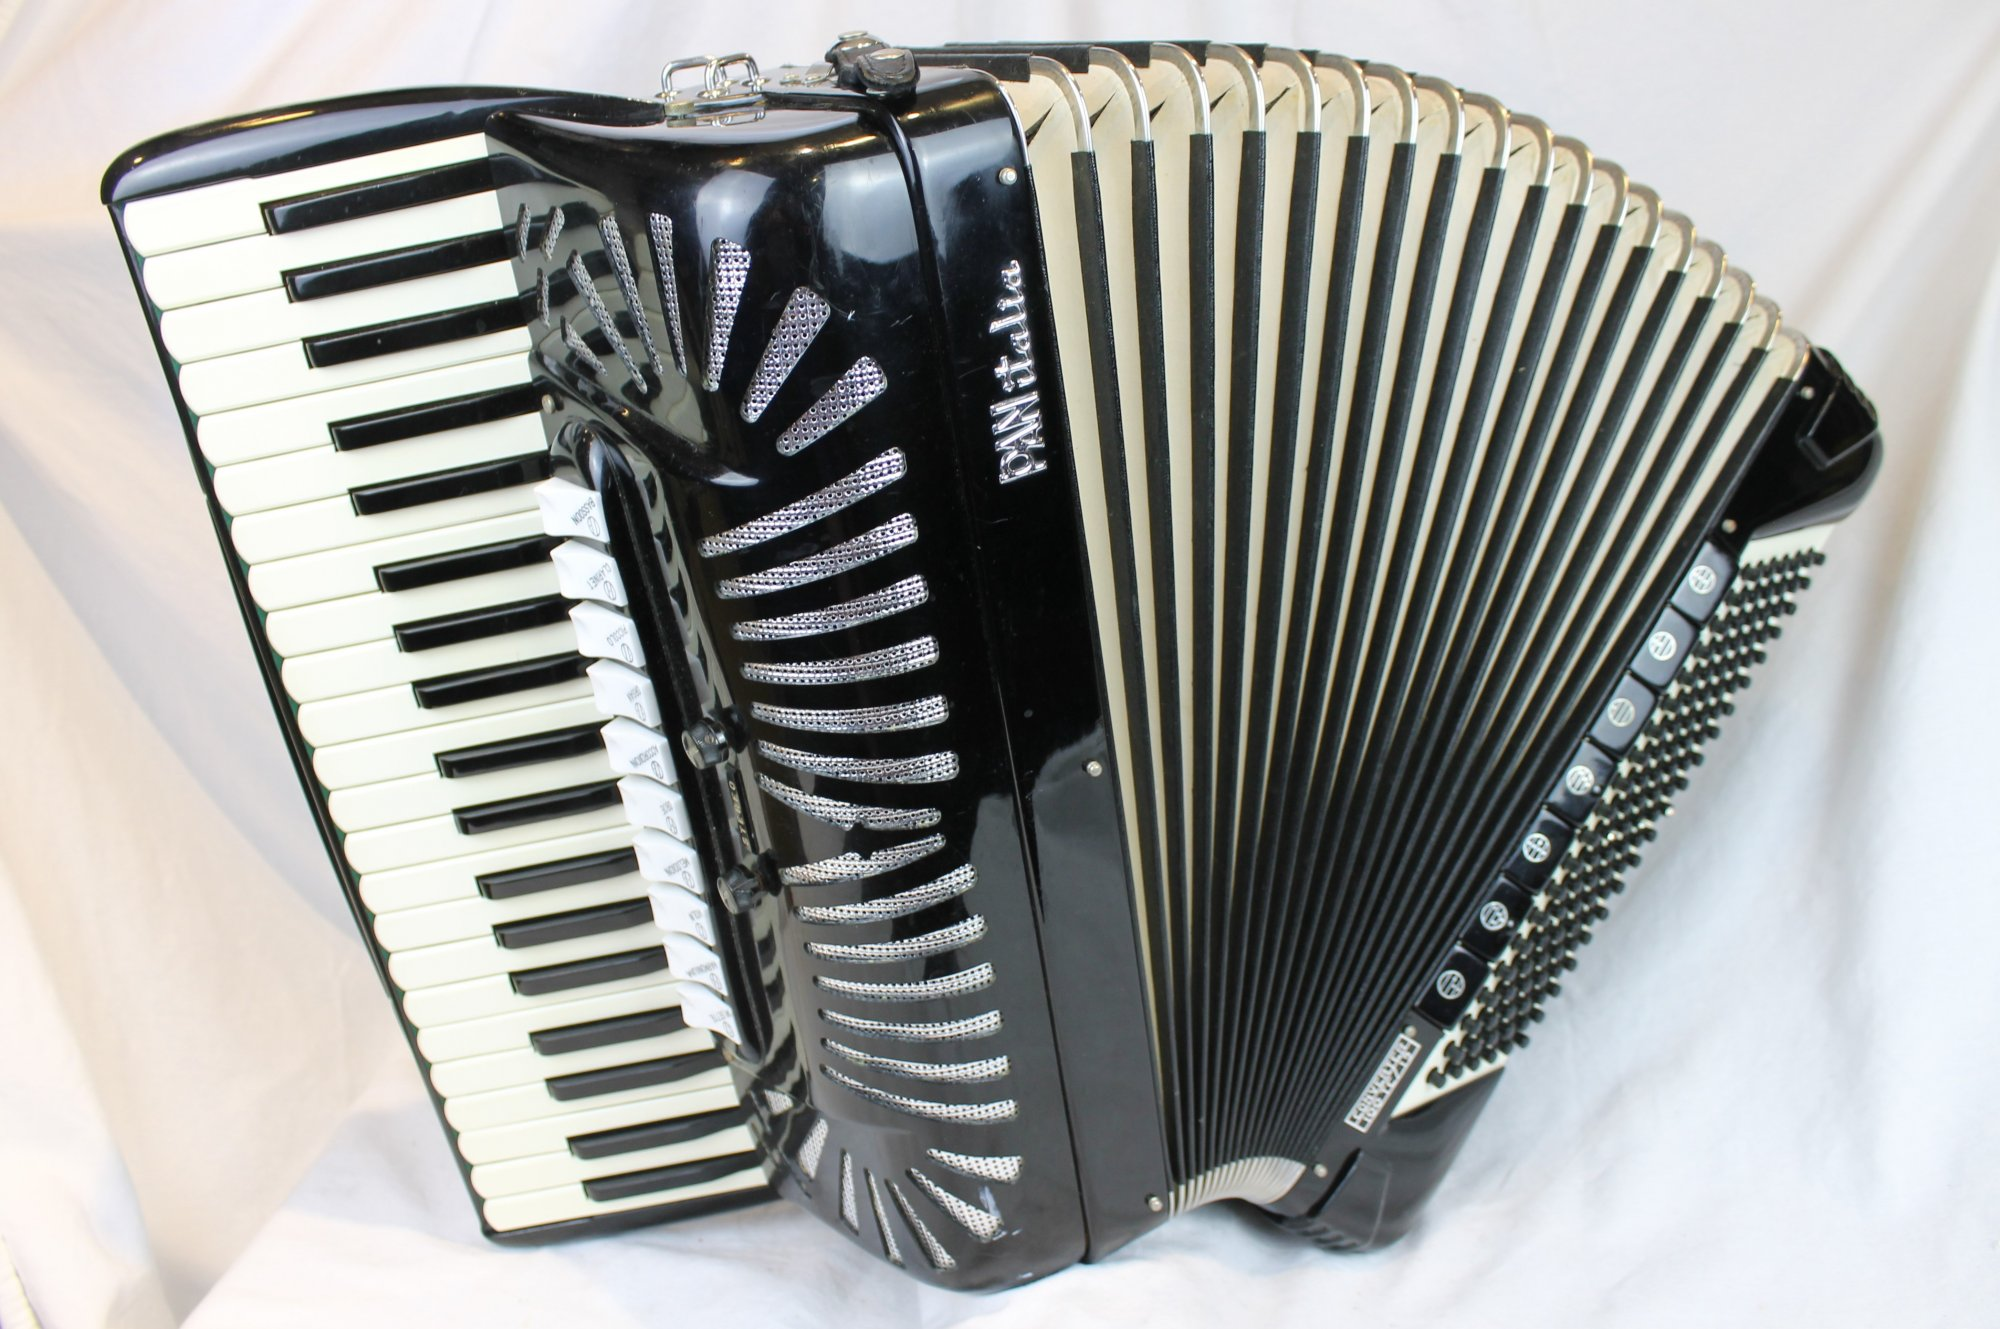 4210 - Black PanItalia Converter TC100/19 Quint Converter Piano Accordion LMMH 41 120